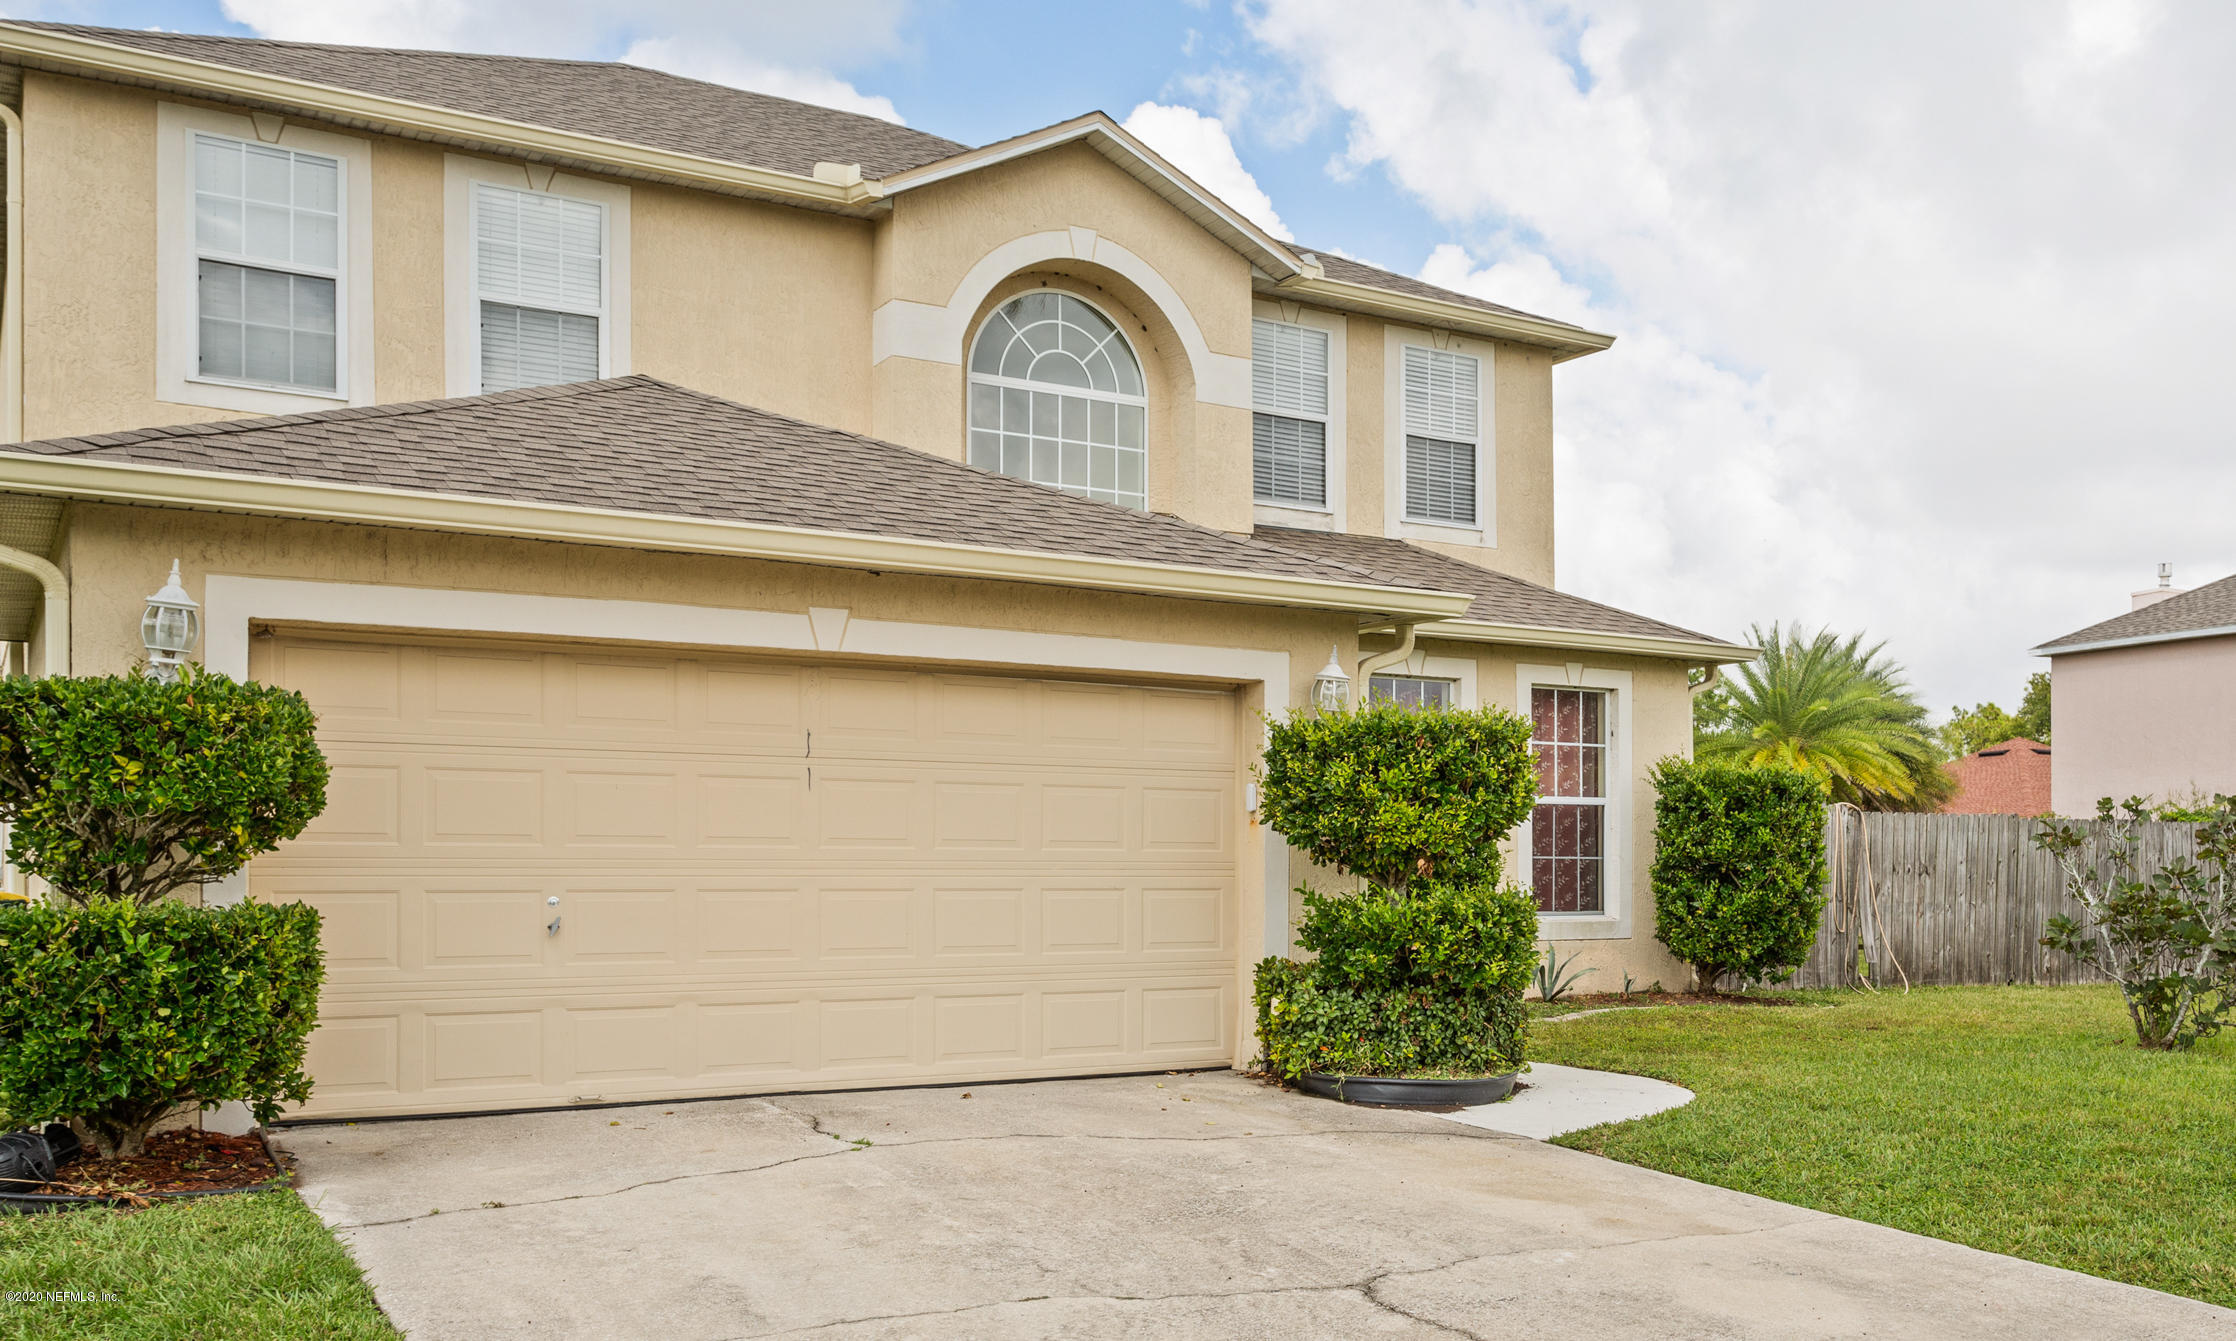 11093 LORD TAYLOR DR JACKSONVILLE - 4